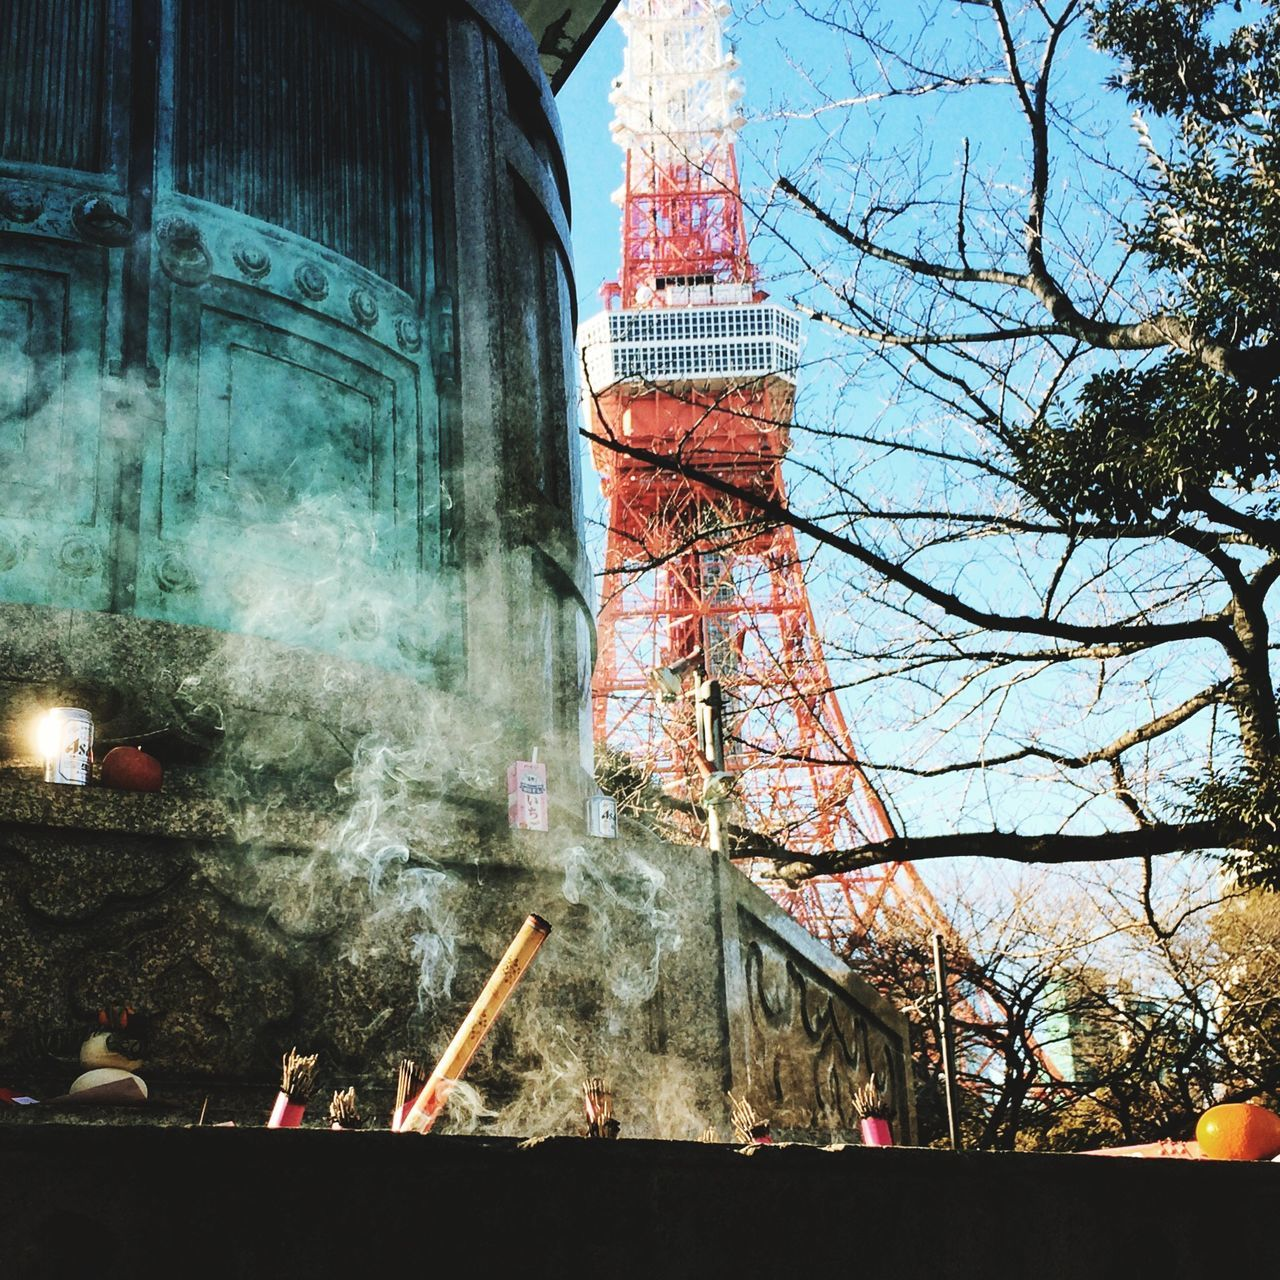 Incense Look Around  Japan Tokyo Tokyo Tower Walking Around Pennyforyourthoughts Streetphotography Urban Landscape Japanese Culture Smoke